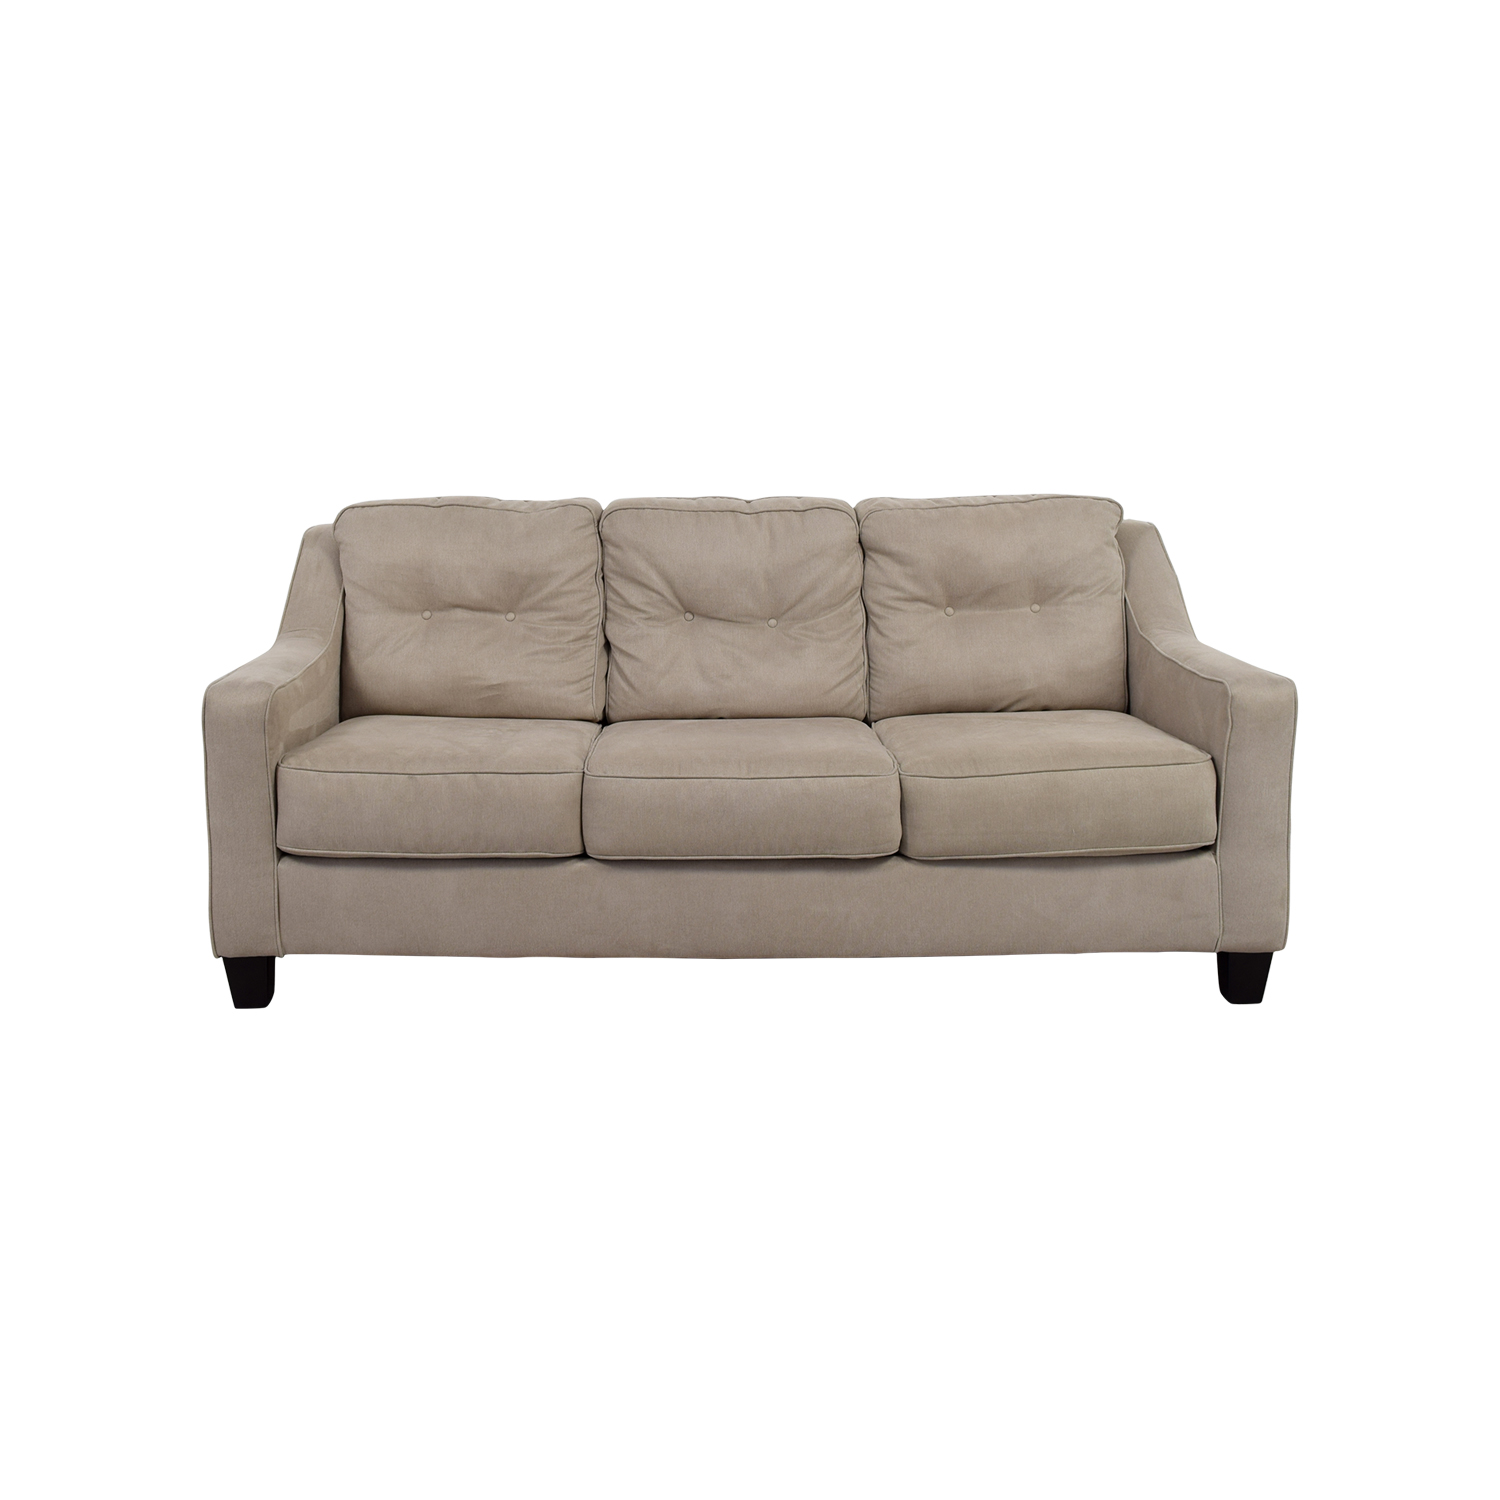 New Ashley Furniture Sofa Marmsweb Marmsweb